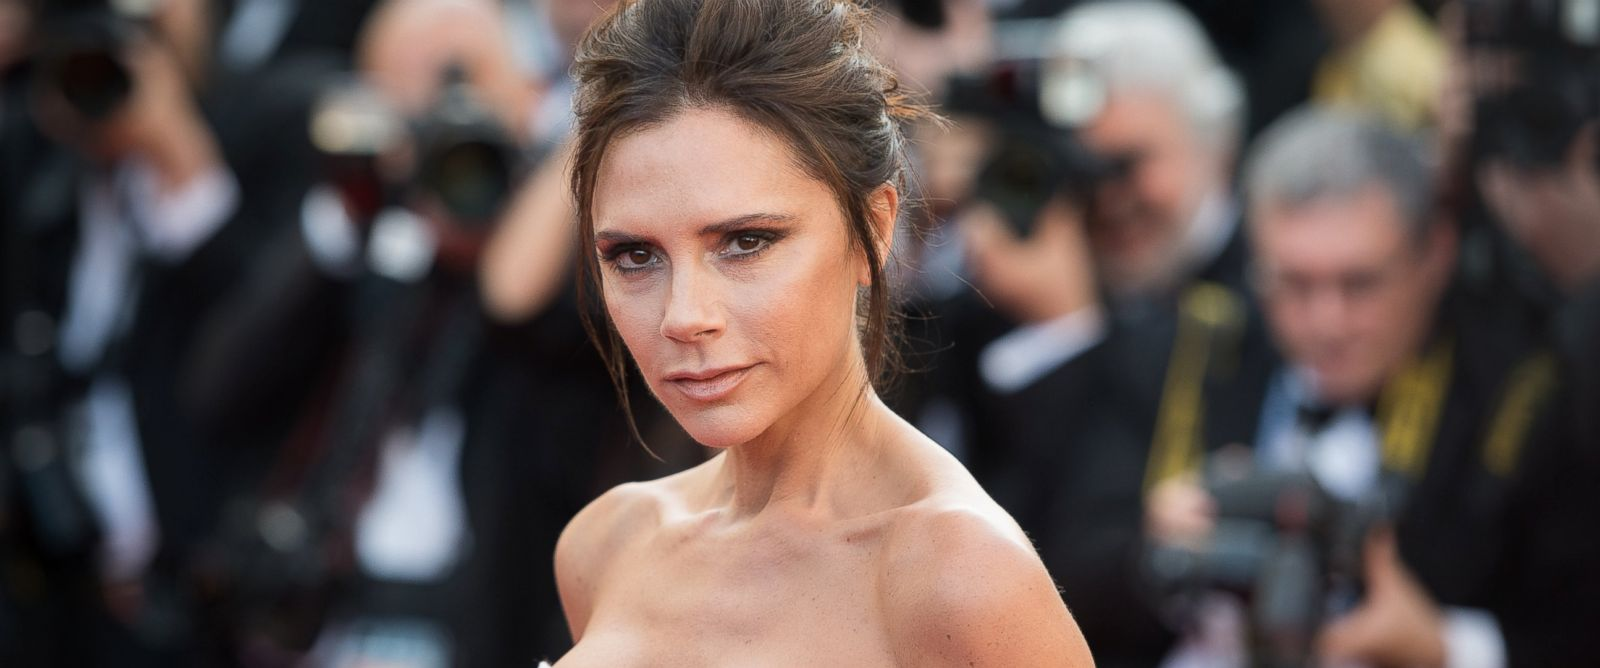 "PHOTO: Victoria Beckham attends the screening of ""Cafe Society"" at the opening gala of the annual 69th Cannes Film Festival at Palais des Festivals, May 11, 2016, in Cannes, France."